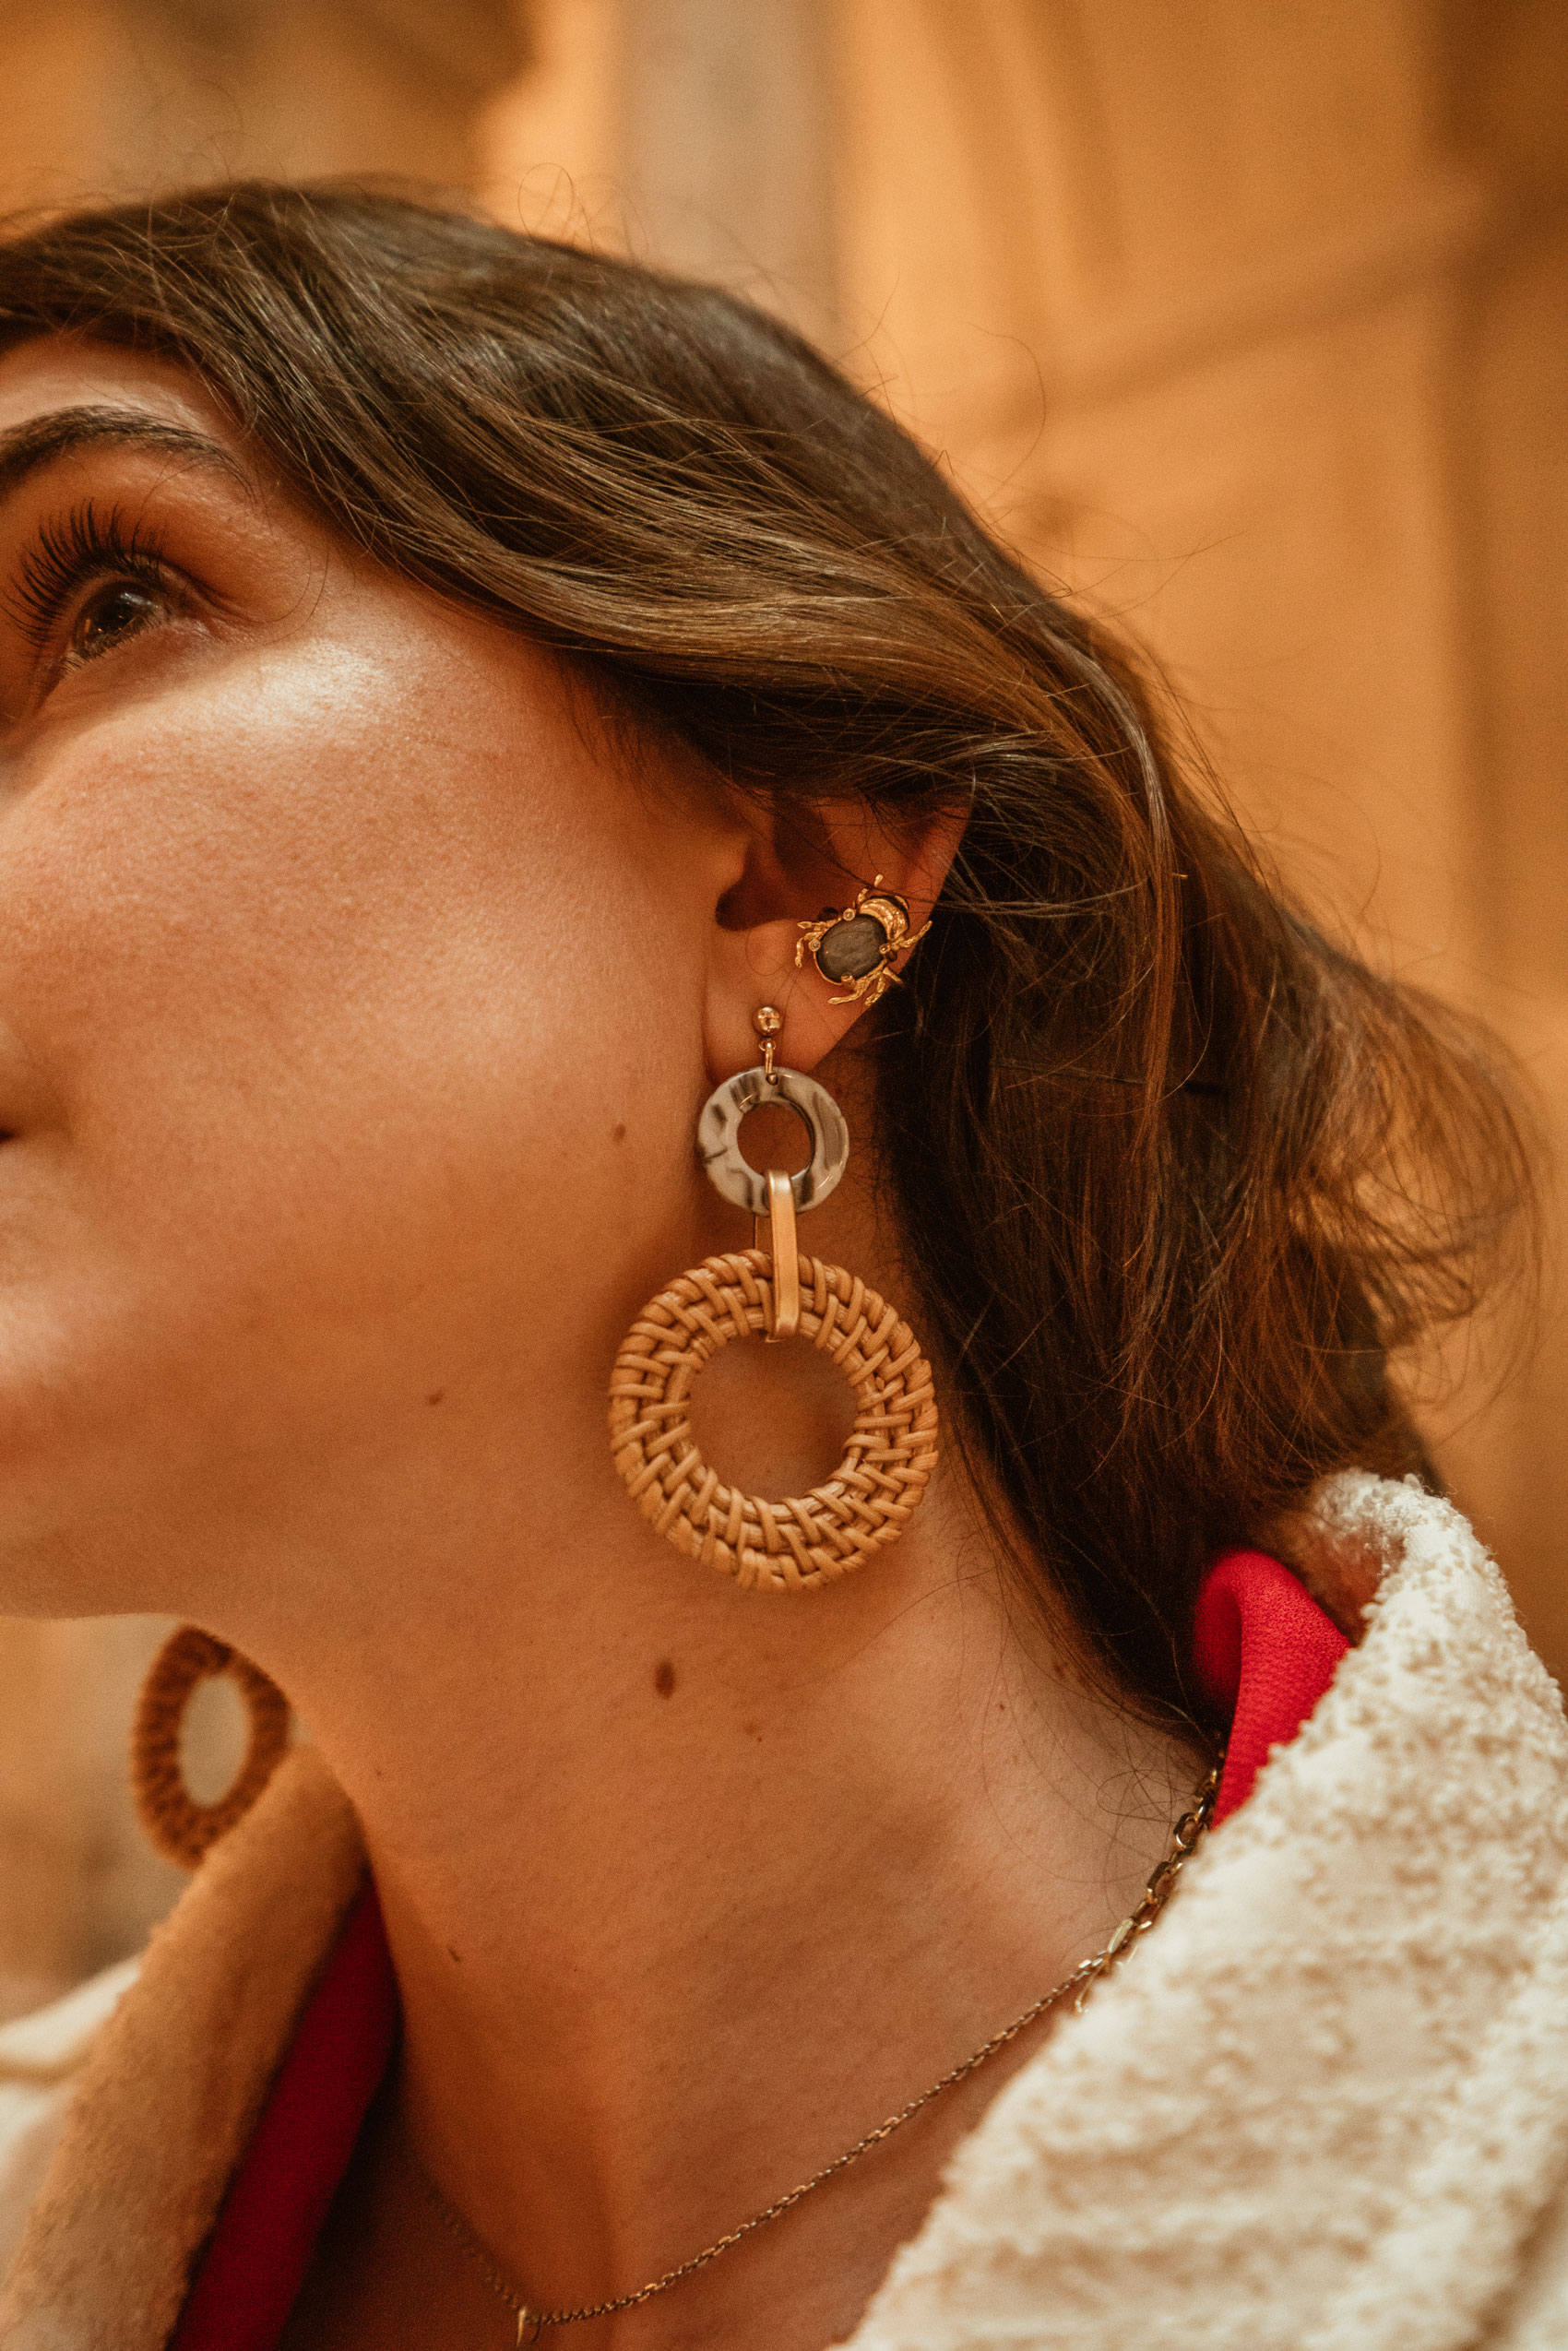 Primark long earring with Carolina Curado Ear Cuff